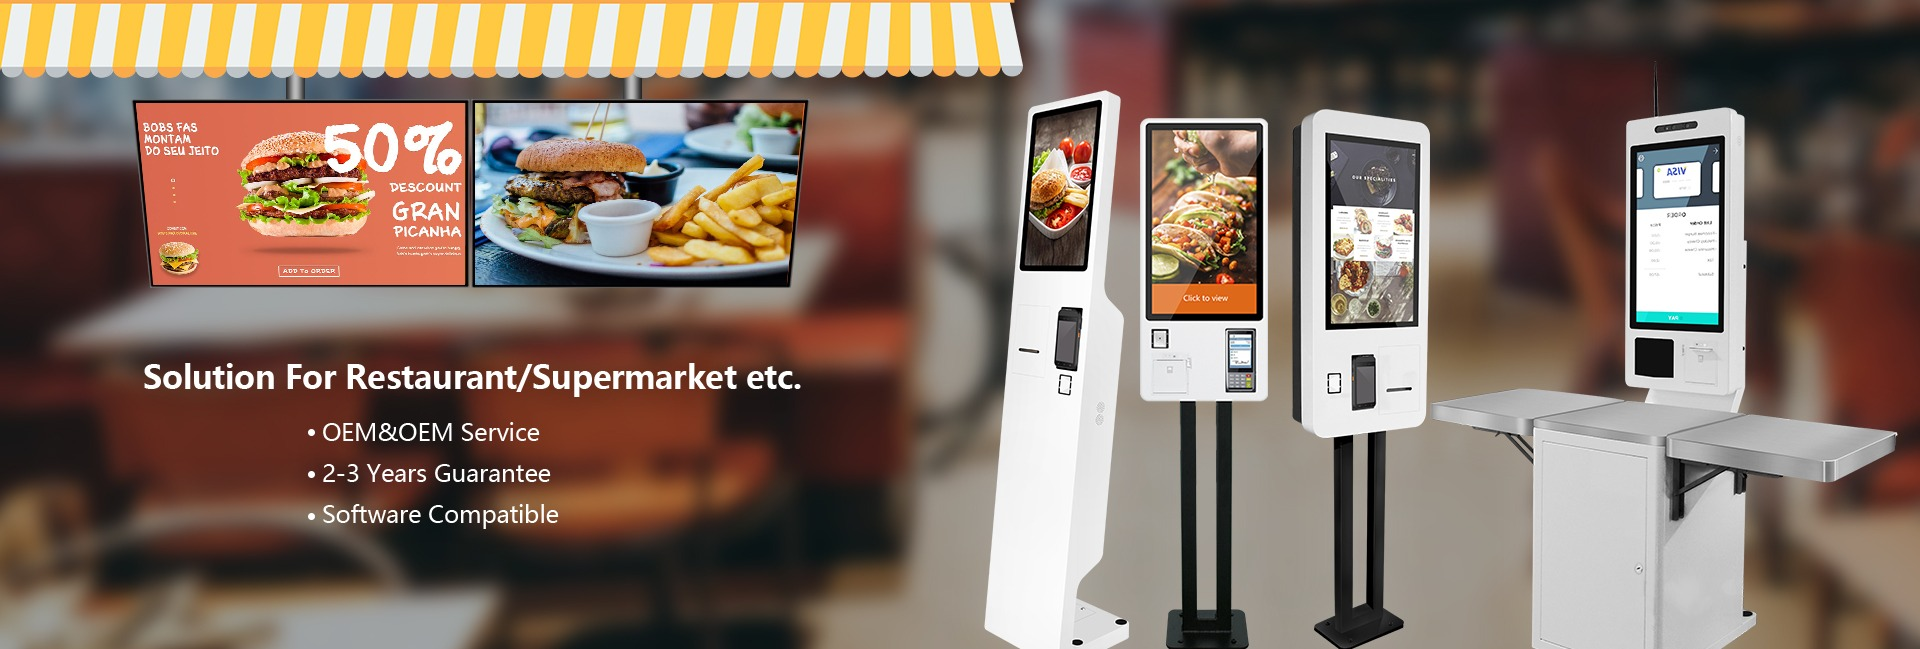 food ordering app Digital Screens and self order kiosk